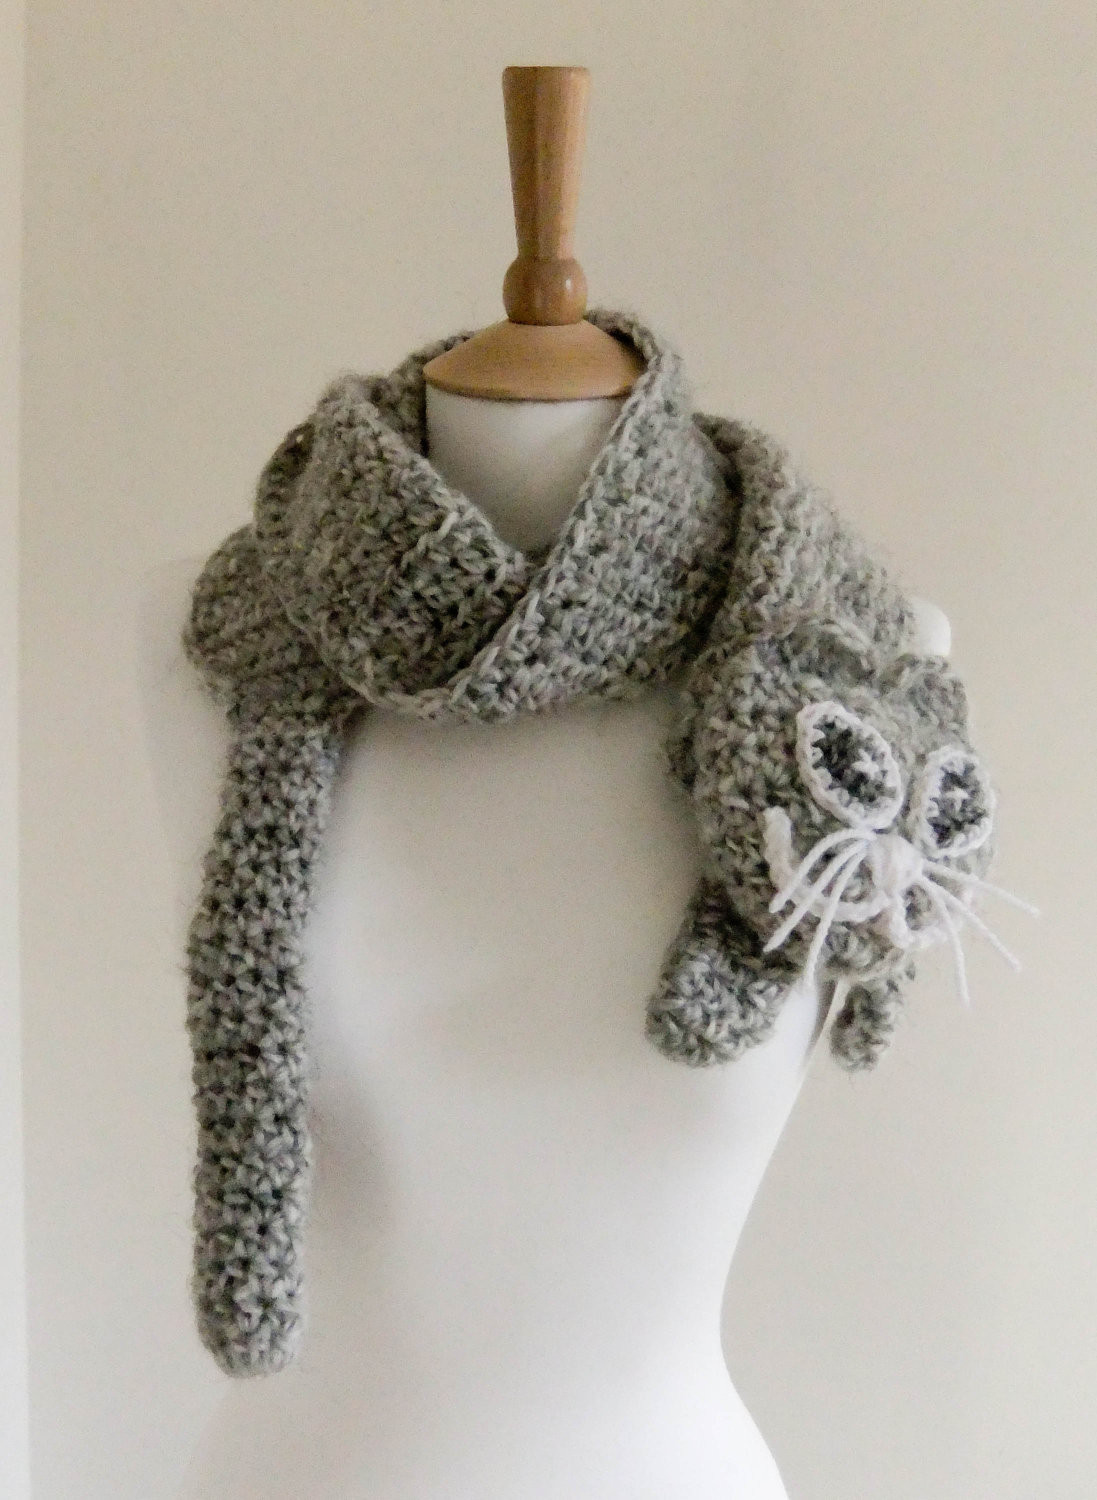 Inspirational Crochet Scarf with button Pattern Crochet button Scarf Of Top 47 Images Crochet button Scarf